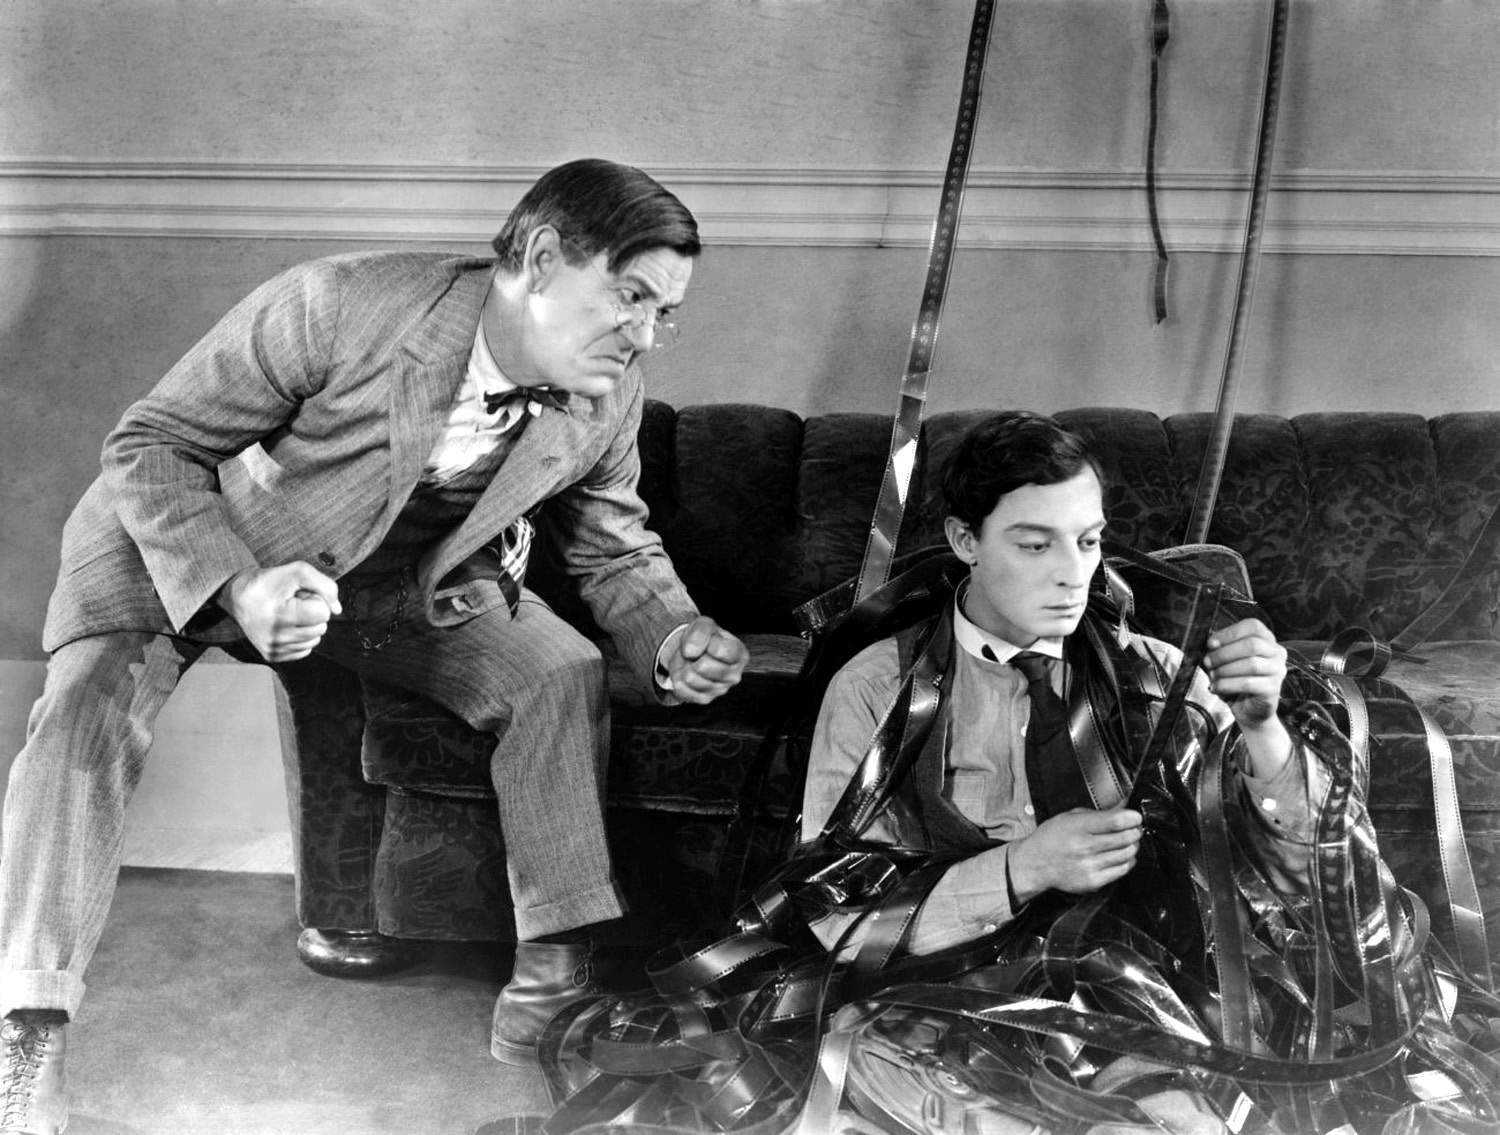 a review of sherlock jr a film by buster keaton Buster keaton's sherlock jr has 10 ratings and 0 reviews buster keaton's  sherlock jr focuses on a classic by one of america's greatest silent film g.